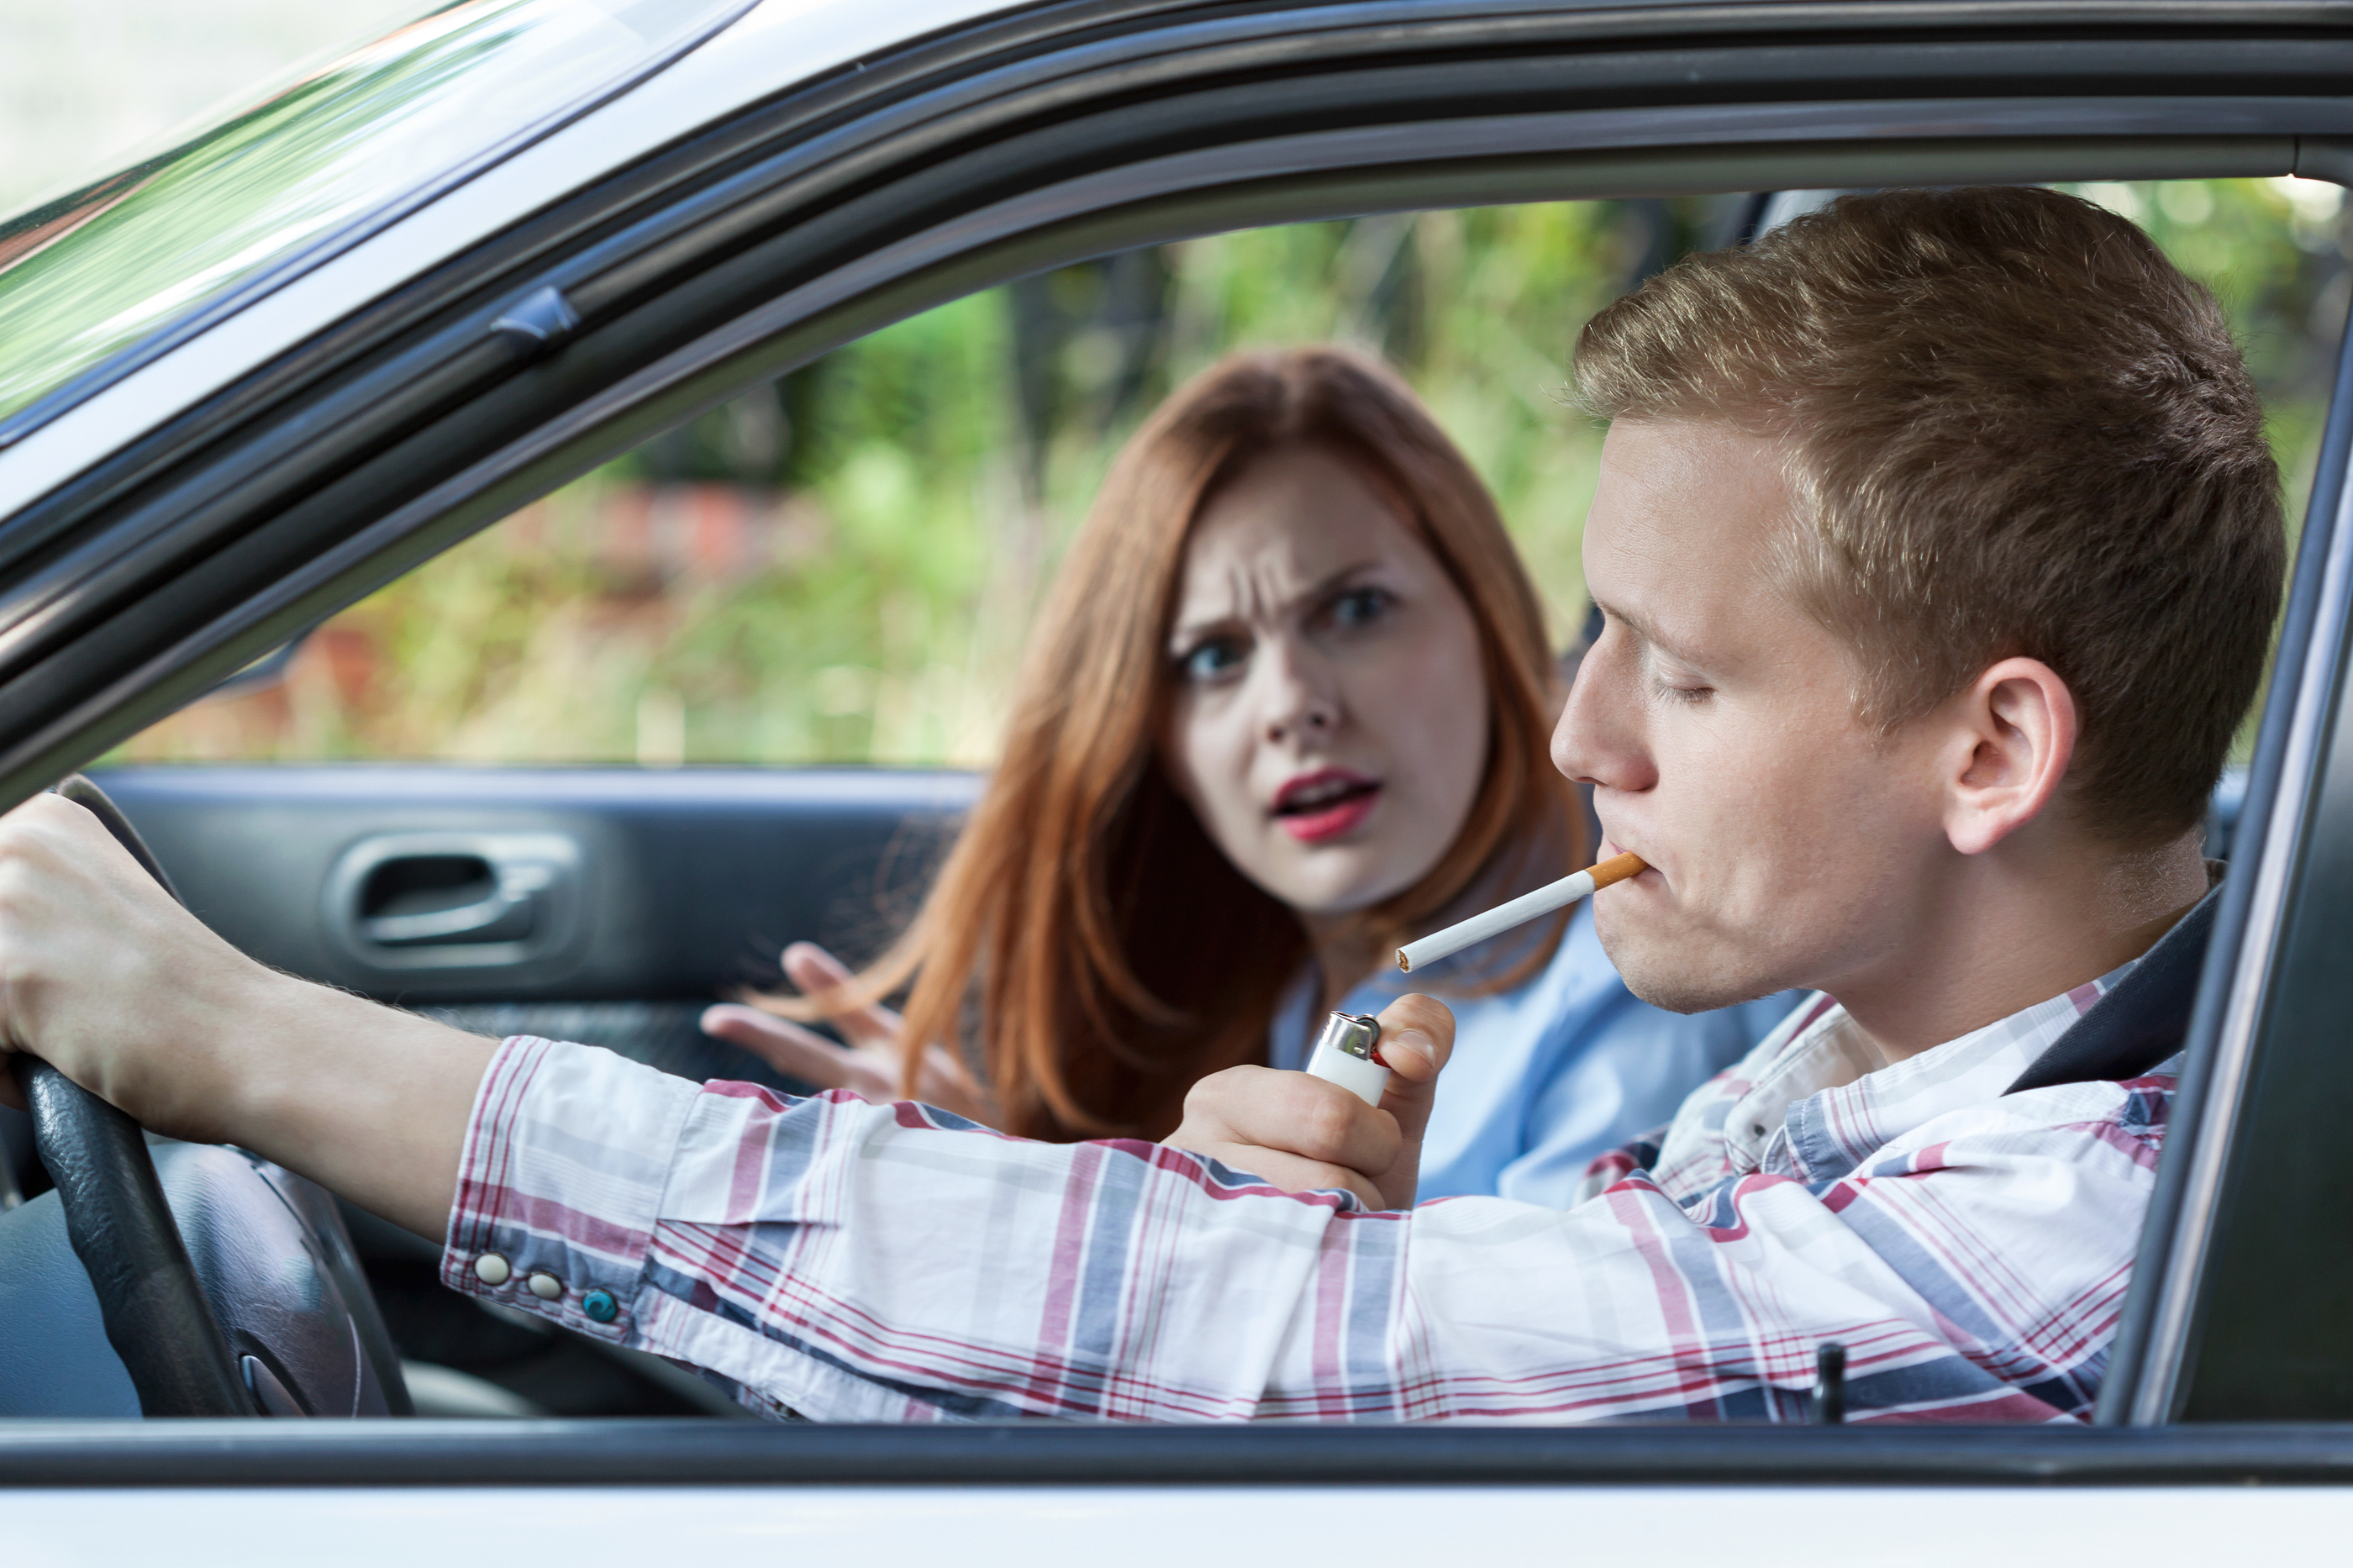 bigstock-couple-argue-over-car-smoking-76679582.jpg